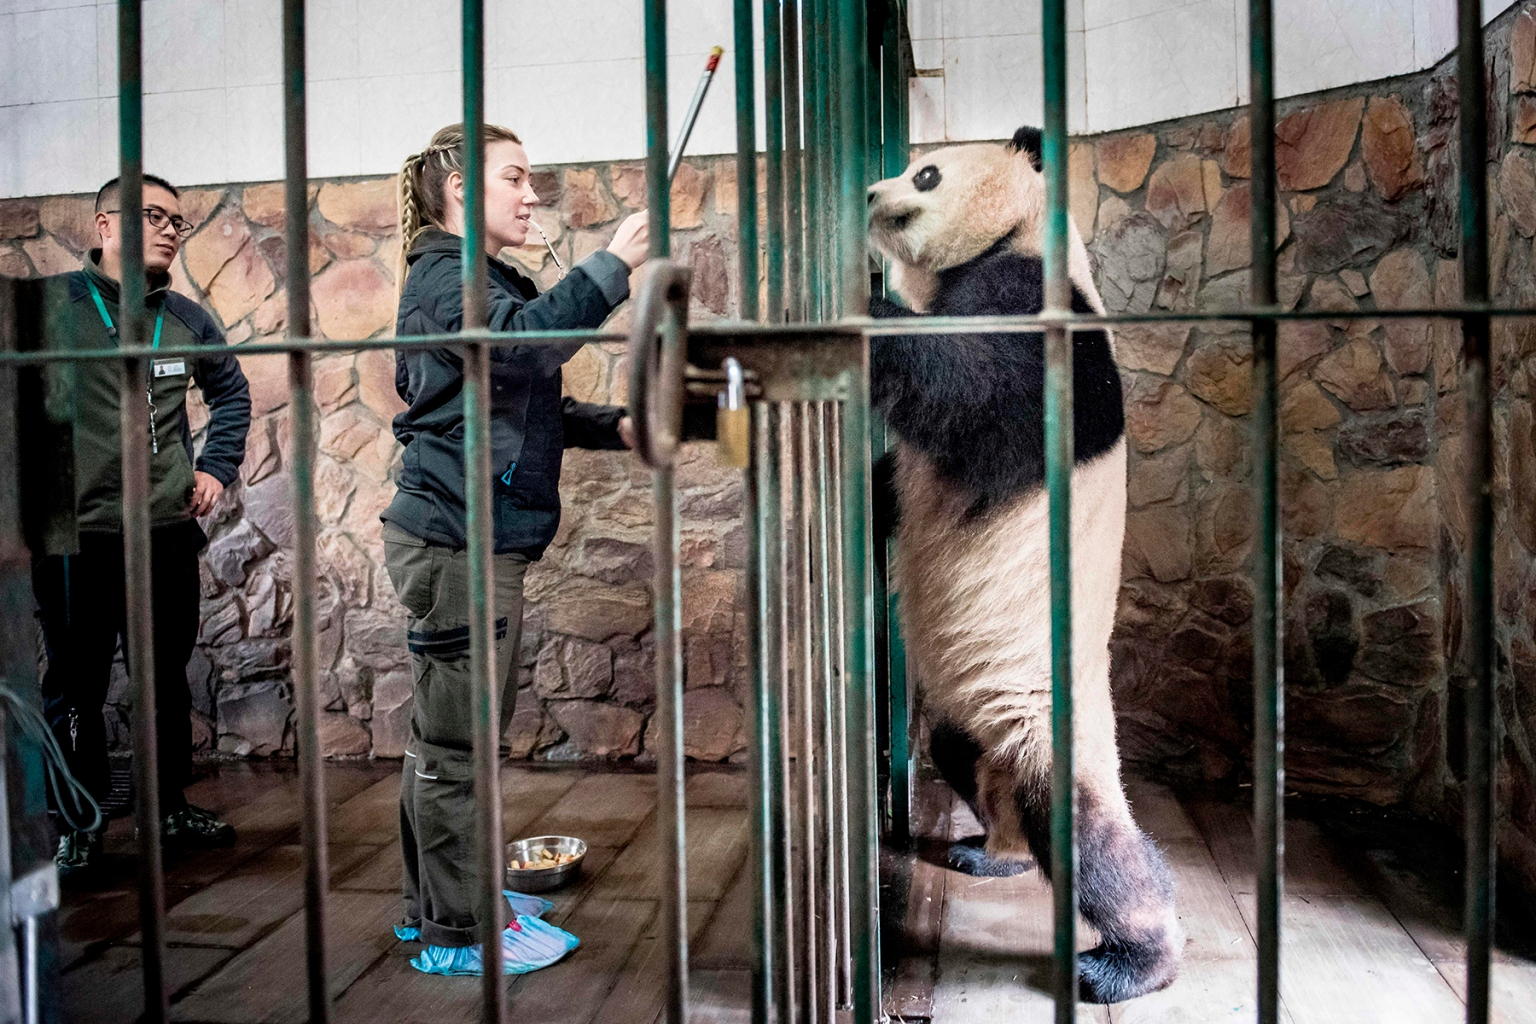 Danish zookeeper Pernille Goerup Andersen interacts with panda Xing Er at the Chengdu Research Base of Giant Panda Breeding in China on April 2. MADS CLAUS RASMUSSEN/AFP/Getty Images